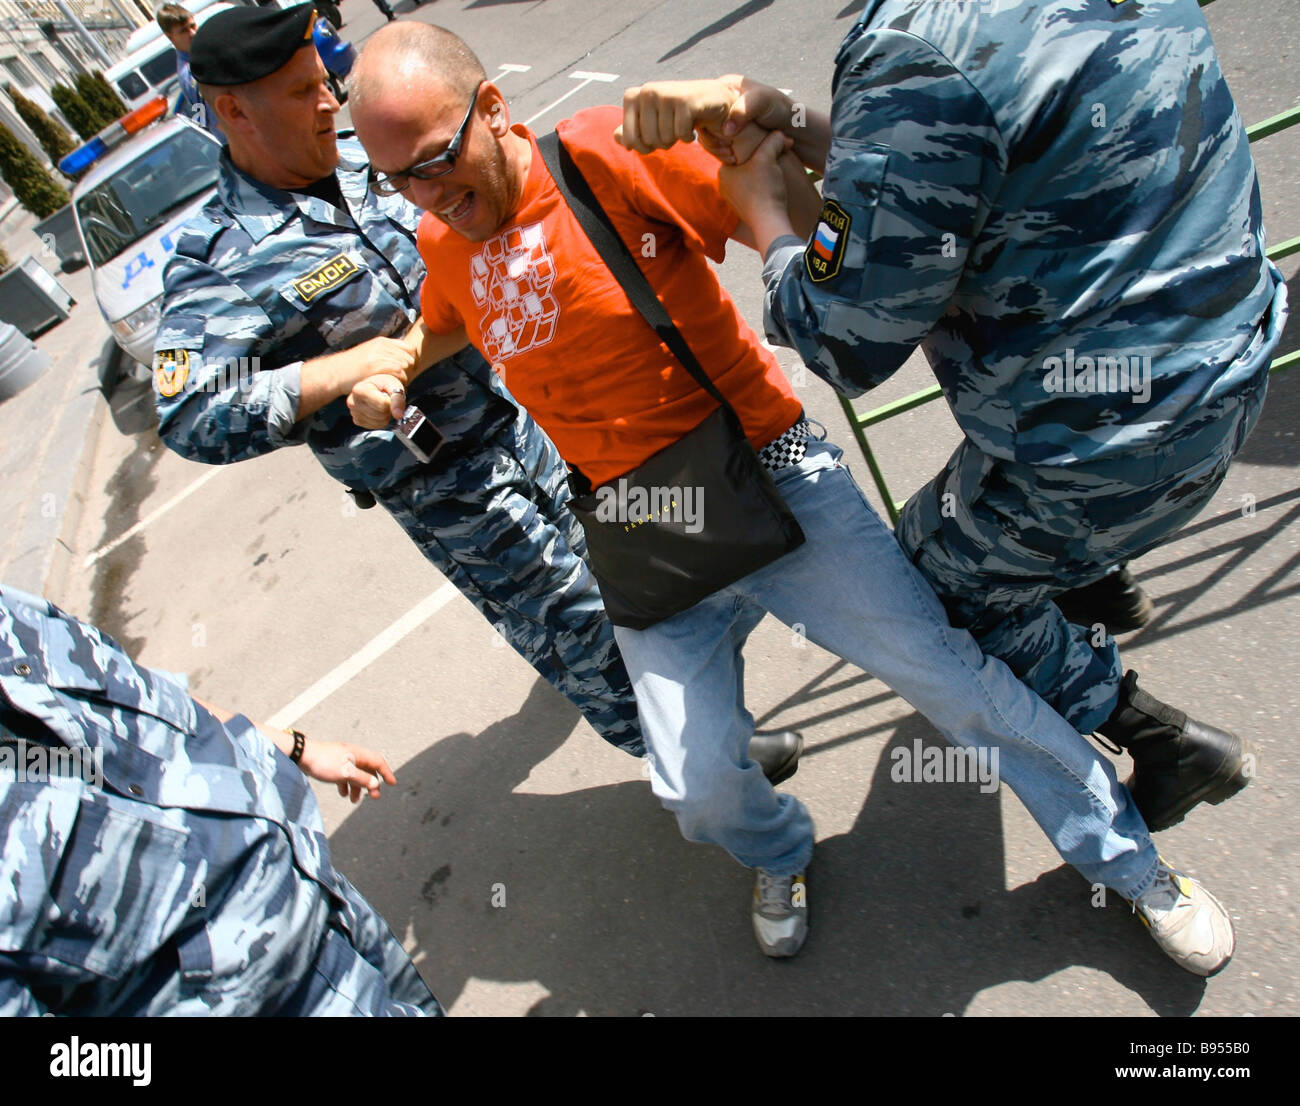 Police dispersed a demonstration of gay parade supporters in Moscow - Stock Image